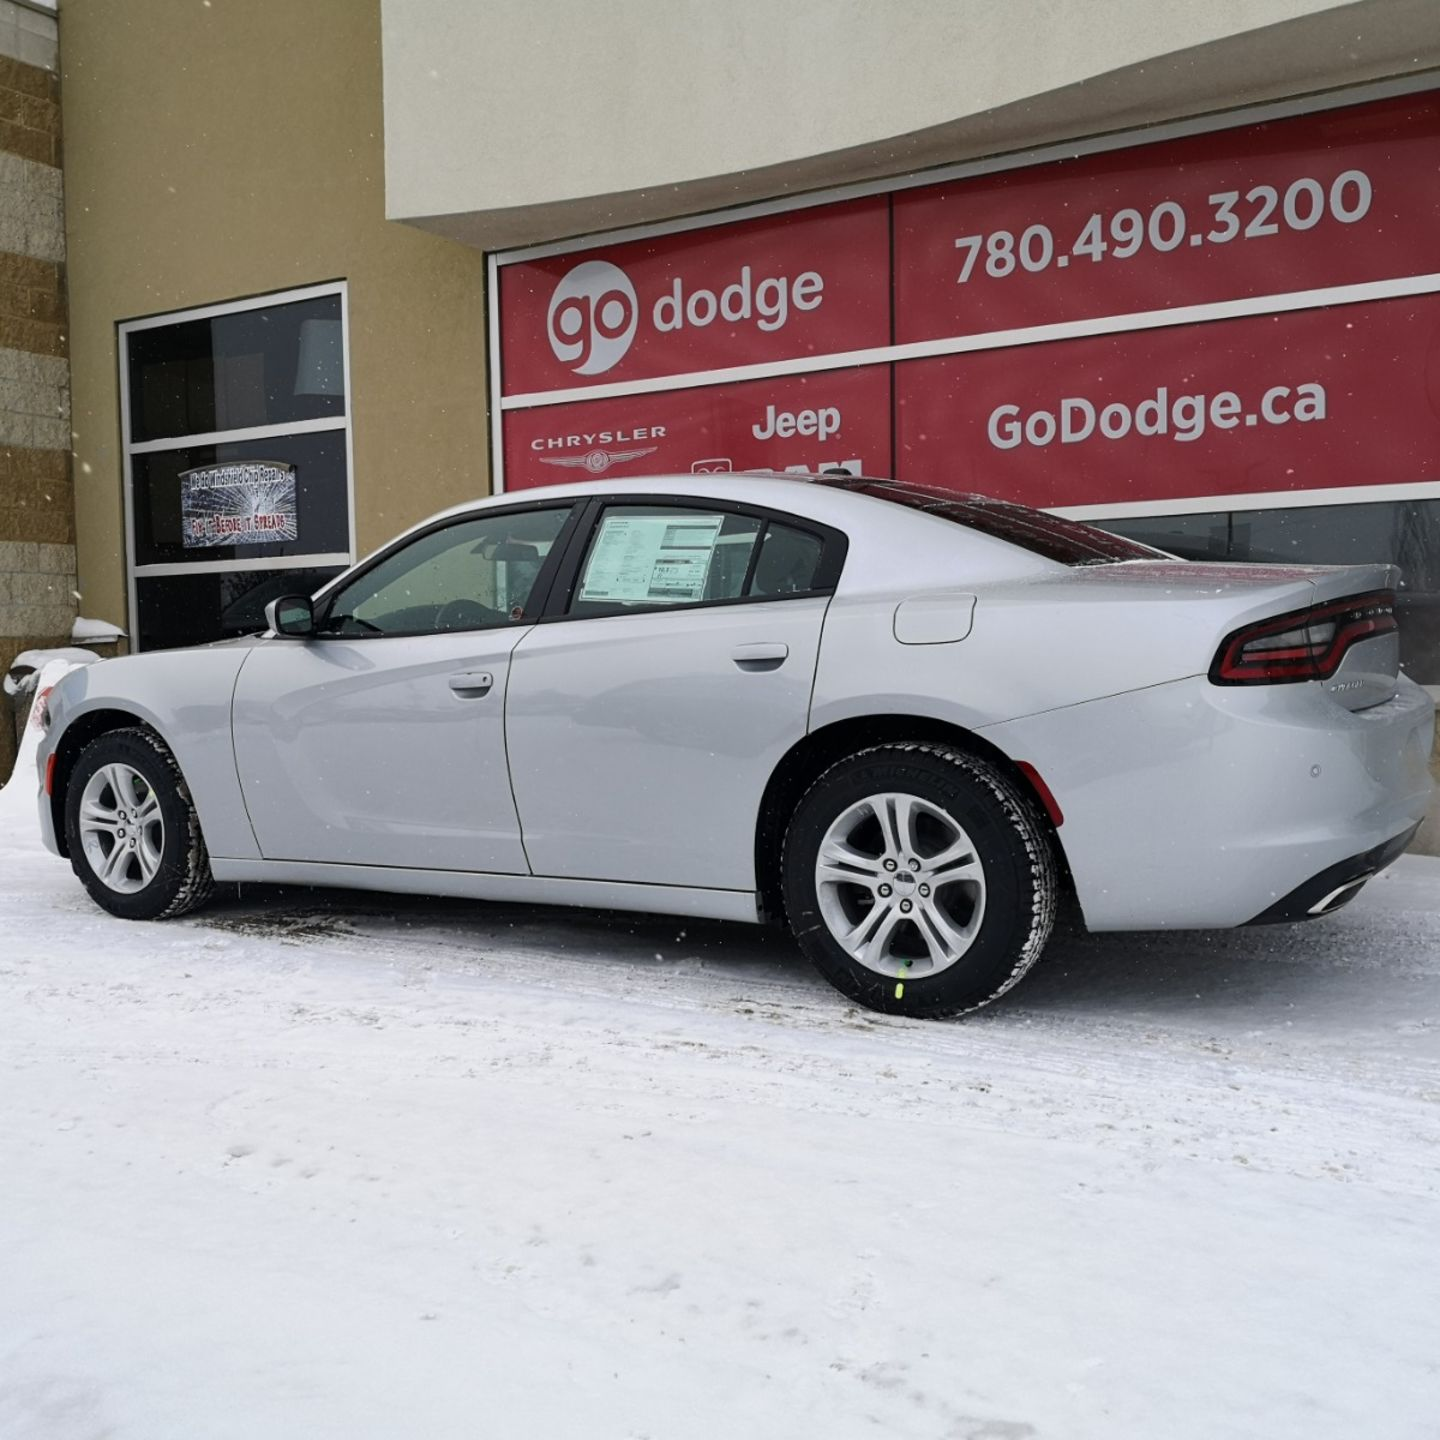 2019 Dodge Charger SXT for sale in Edmonton, Alberta